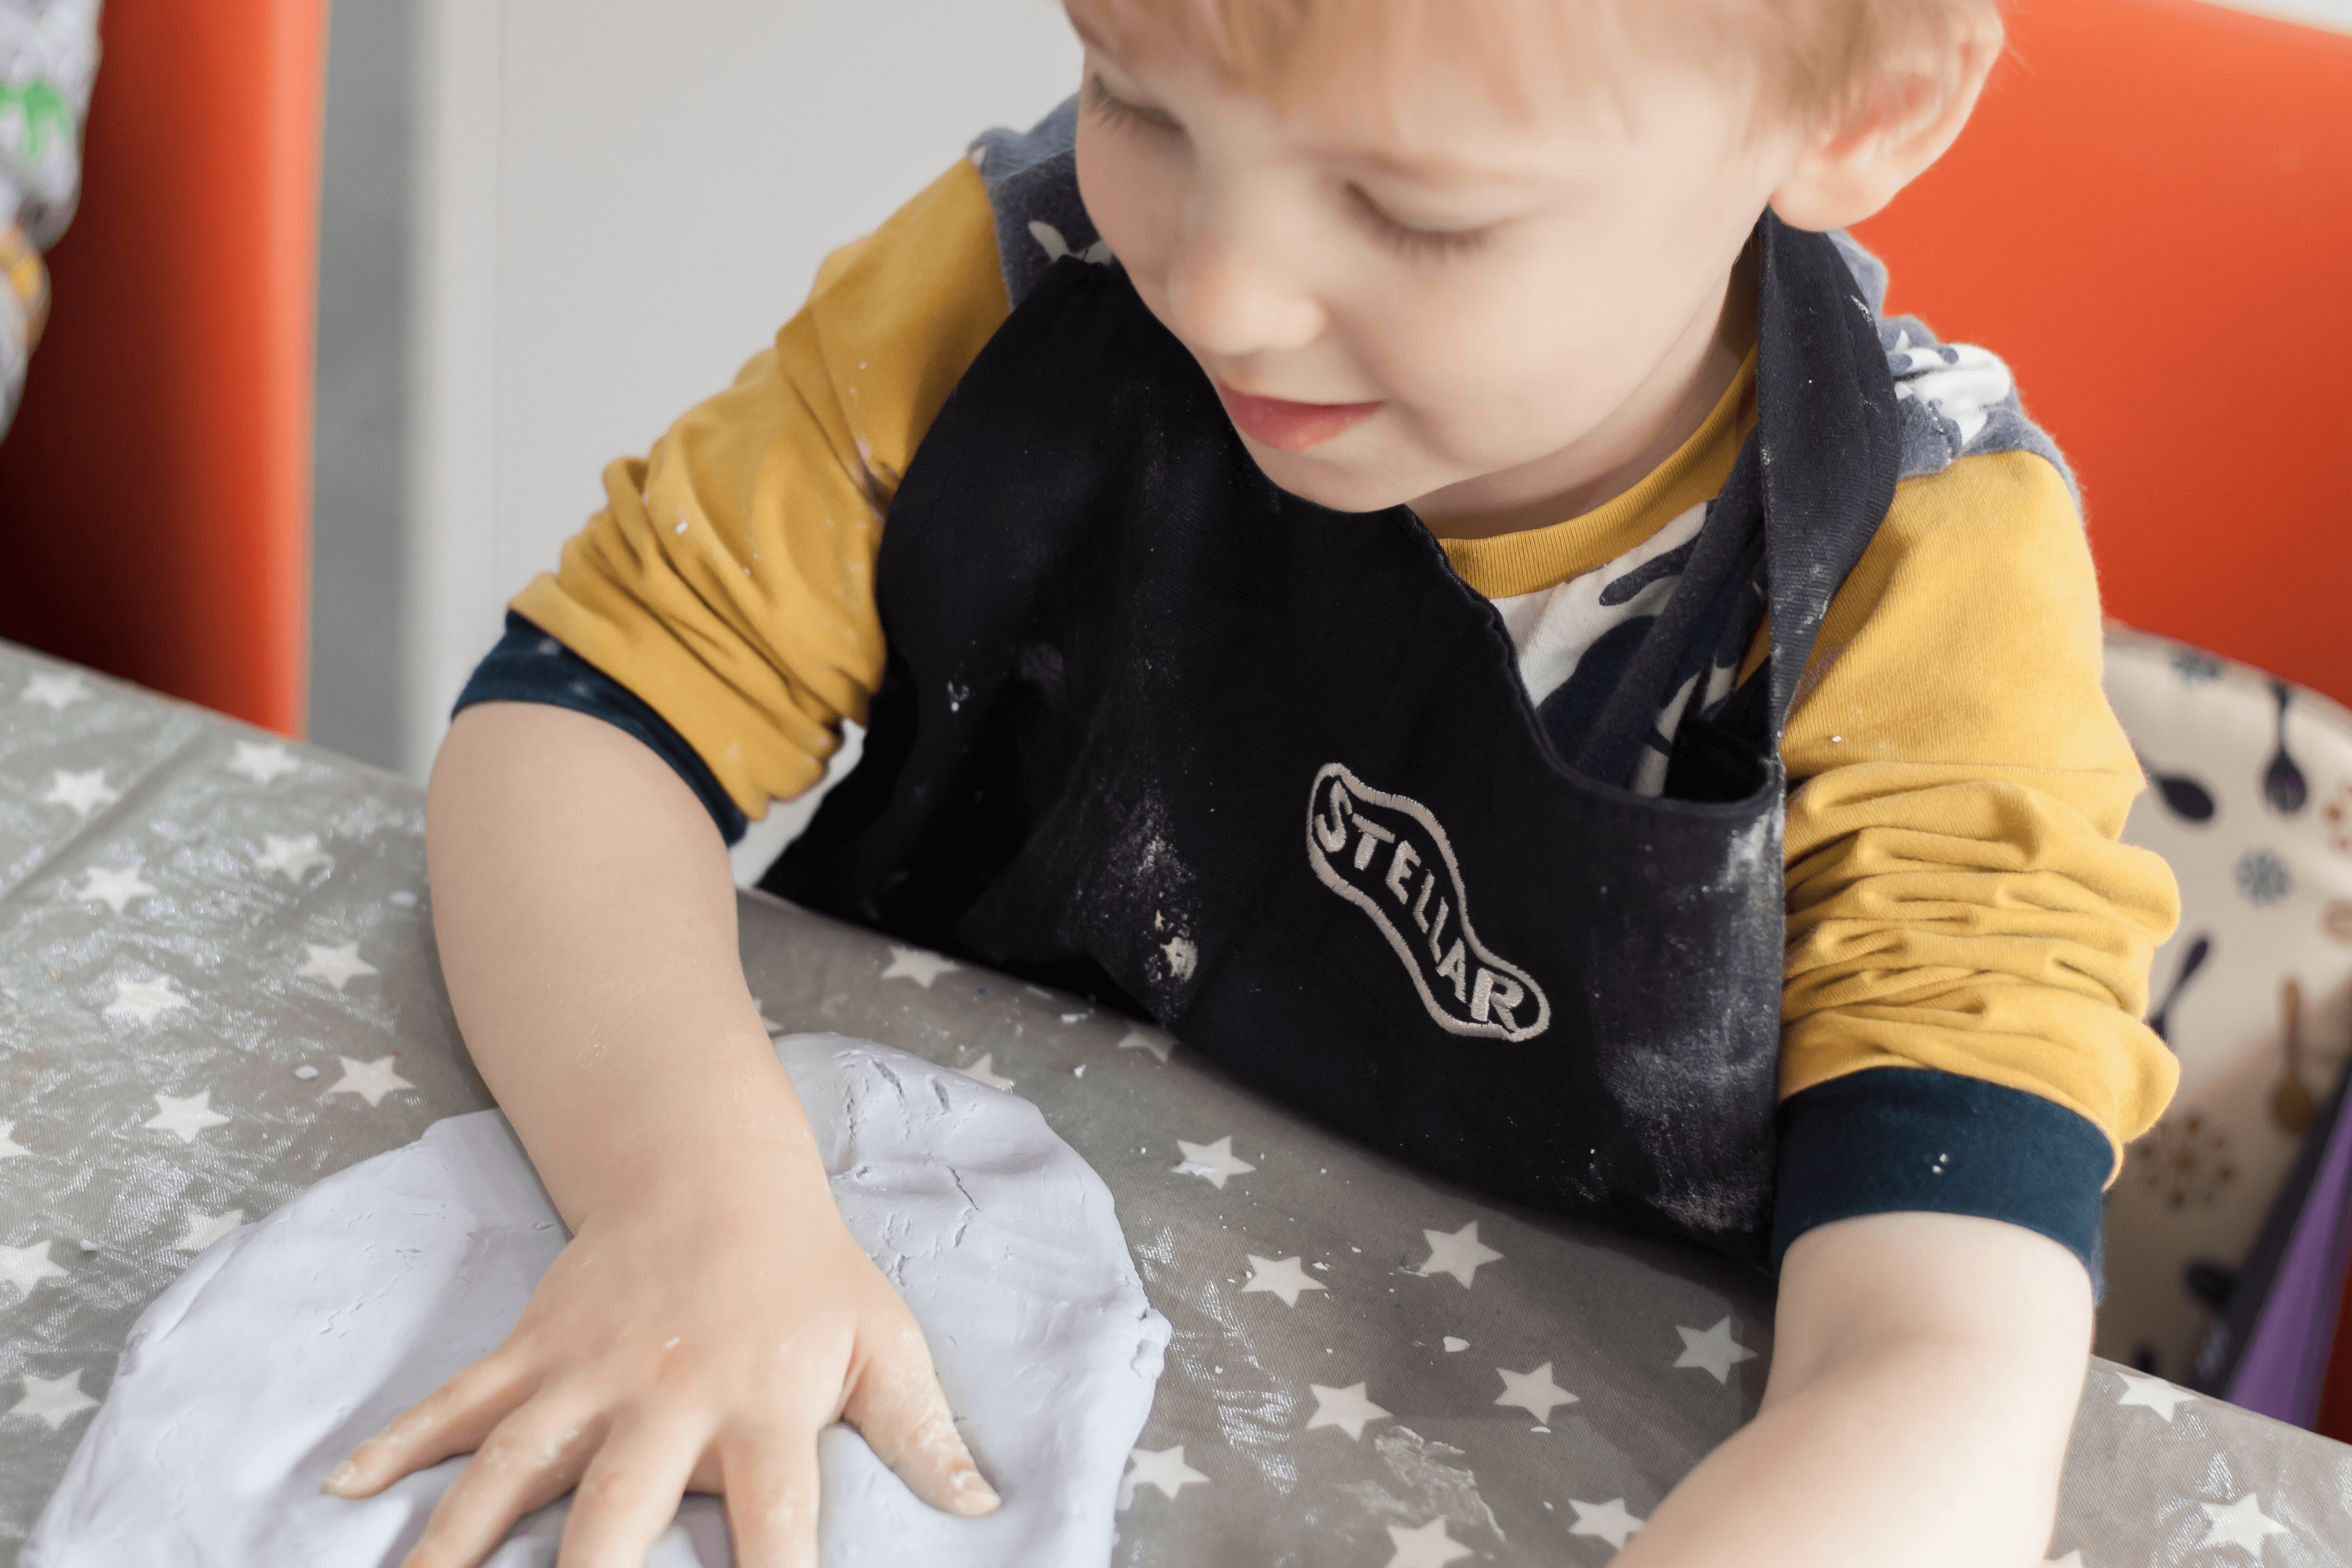 Gabe making hand prints in our homemade cloud dough